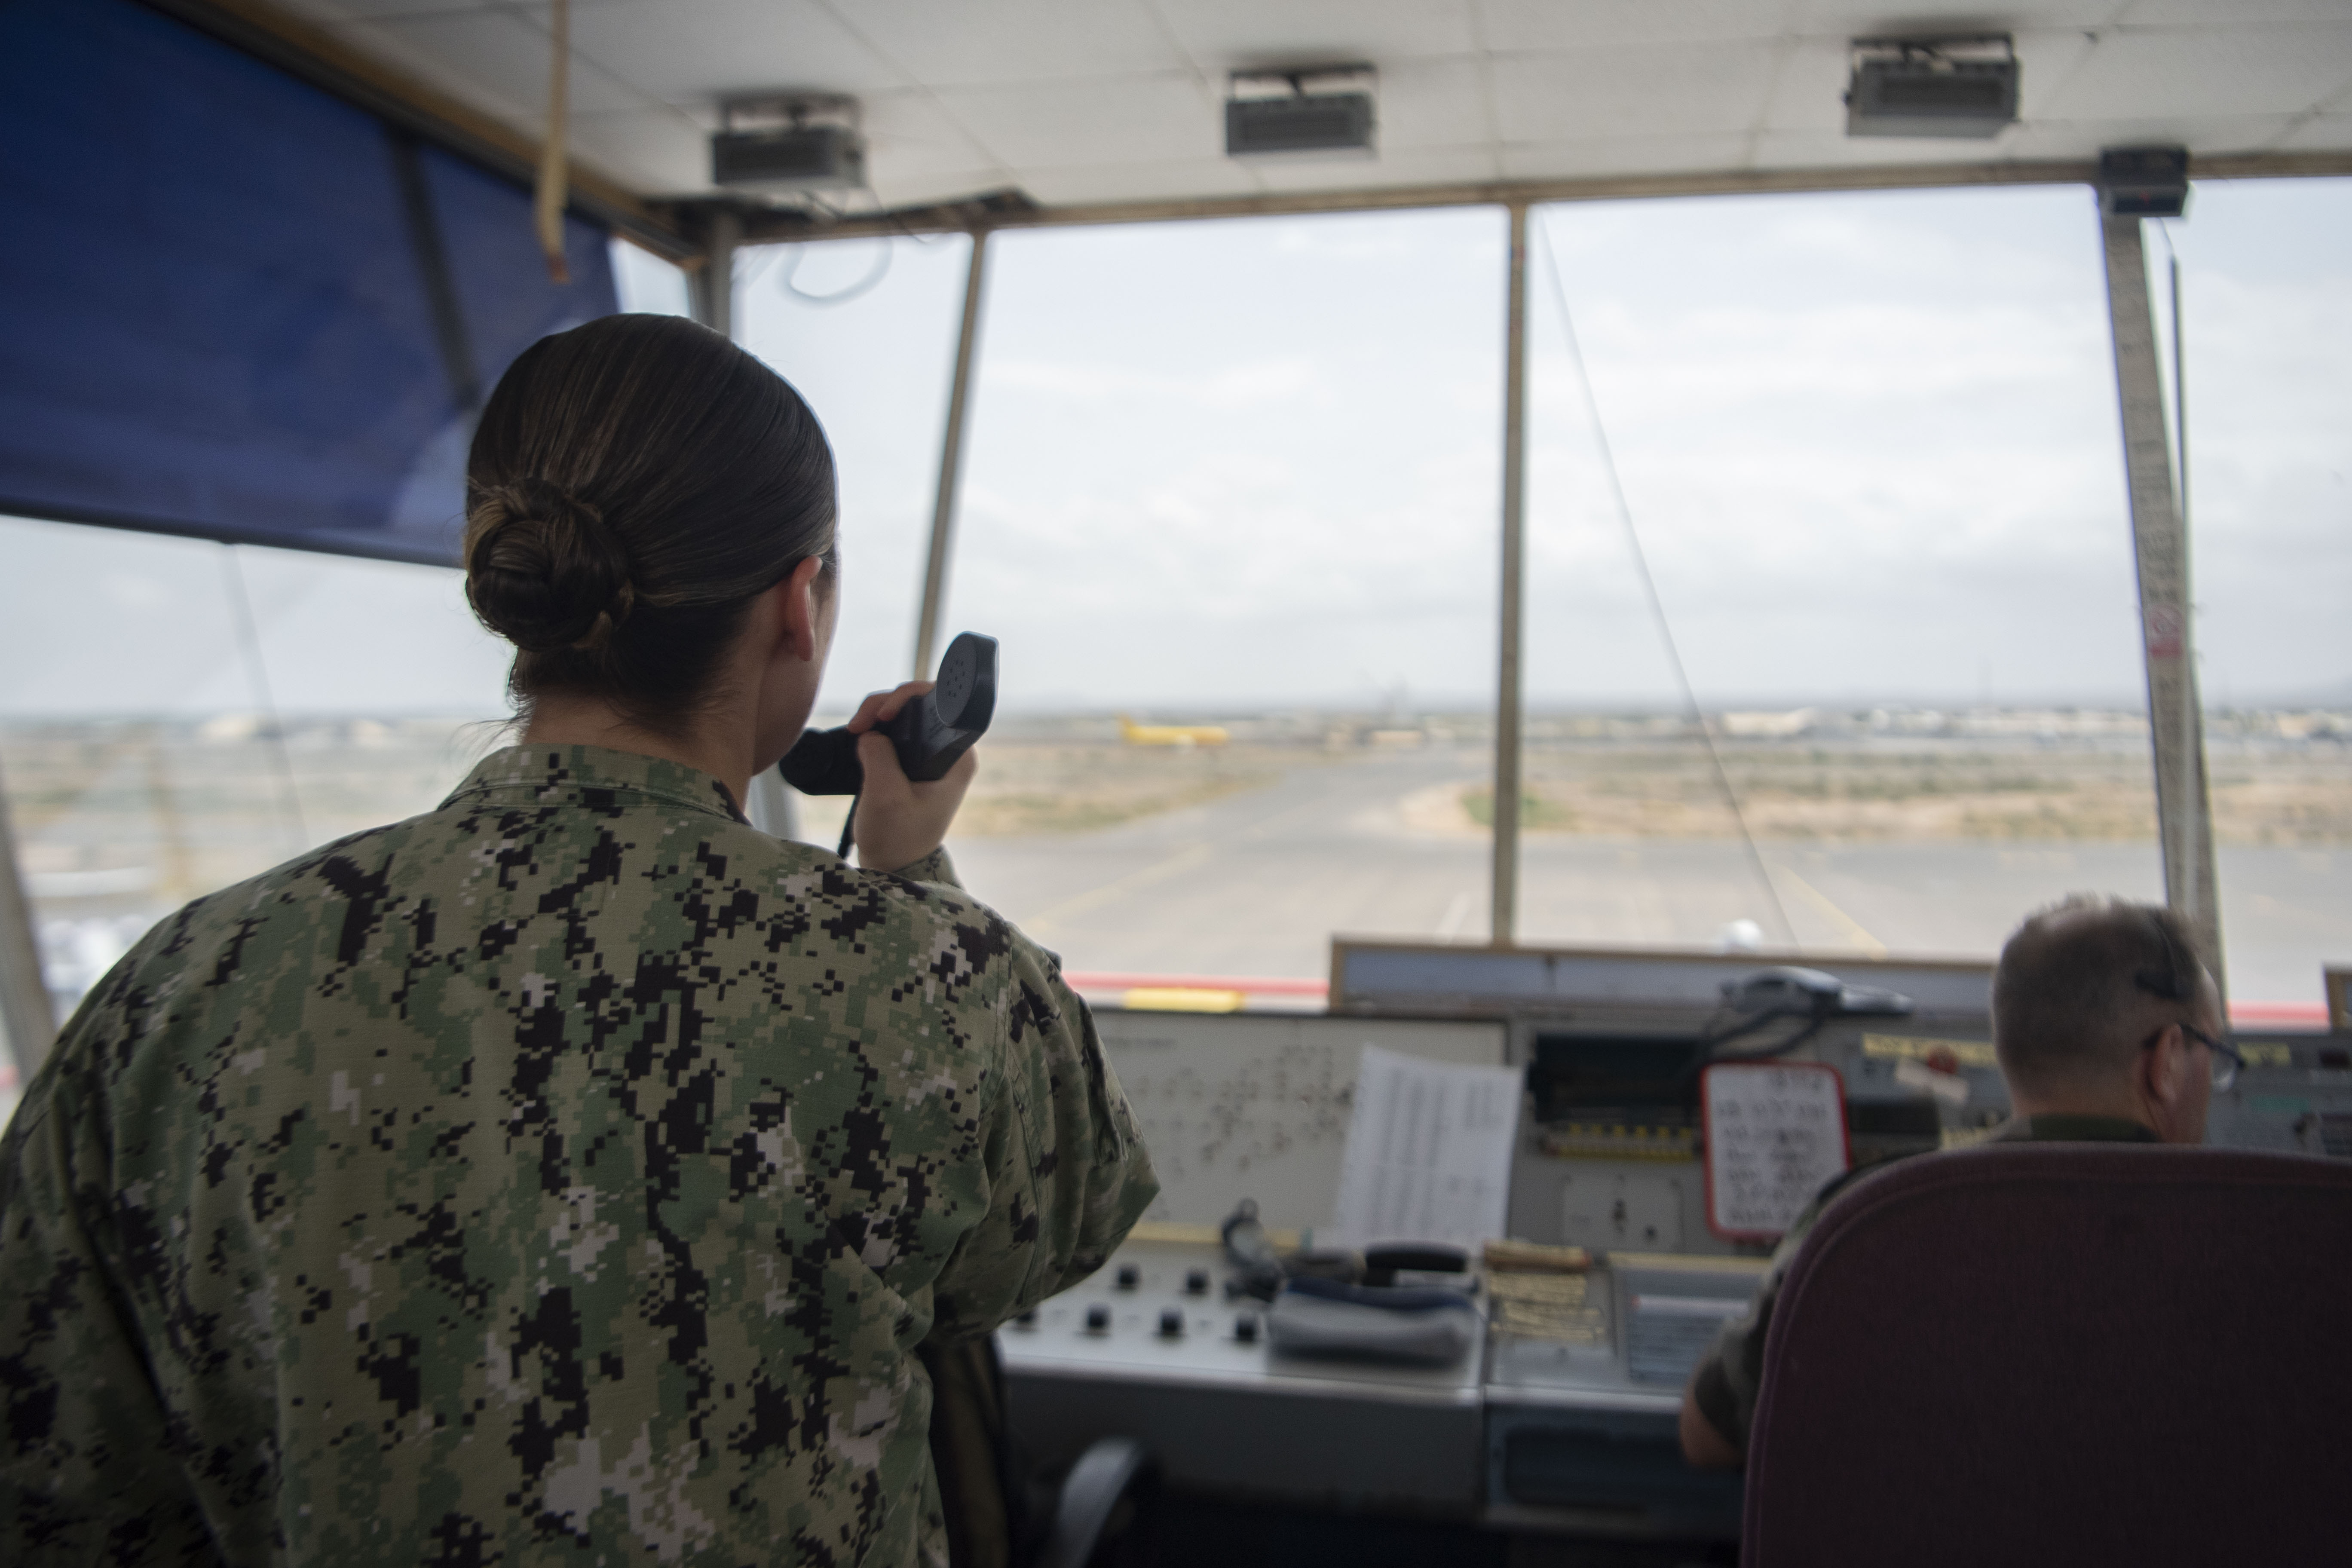 U.S. Navy Air Traffic Controller 1st Class Kristy Lescrynski, Combined Joint Task Force-Horn of Africa (CJTF-HOA), air traffic control training chief, left, directs an aircraft into takeoff position at Djibouti-Ambouli International Airport, March 17, 2020. Prior to the implementation of U.S. Centers for Disease Control and Prevention safety guidelines, Lescrynski worked in Ambouli's tower to coordinate with host nation and coalition partners to ensure smooth air and ground operations at the airport. Since social distancing was implemented, U.S. controllers work out of a watch tower elsewhere on the flight line and maintain contact with Ambouli using alternate communication methods. (U.S. Air Force photo by Senior Airman Gage Daniel)